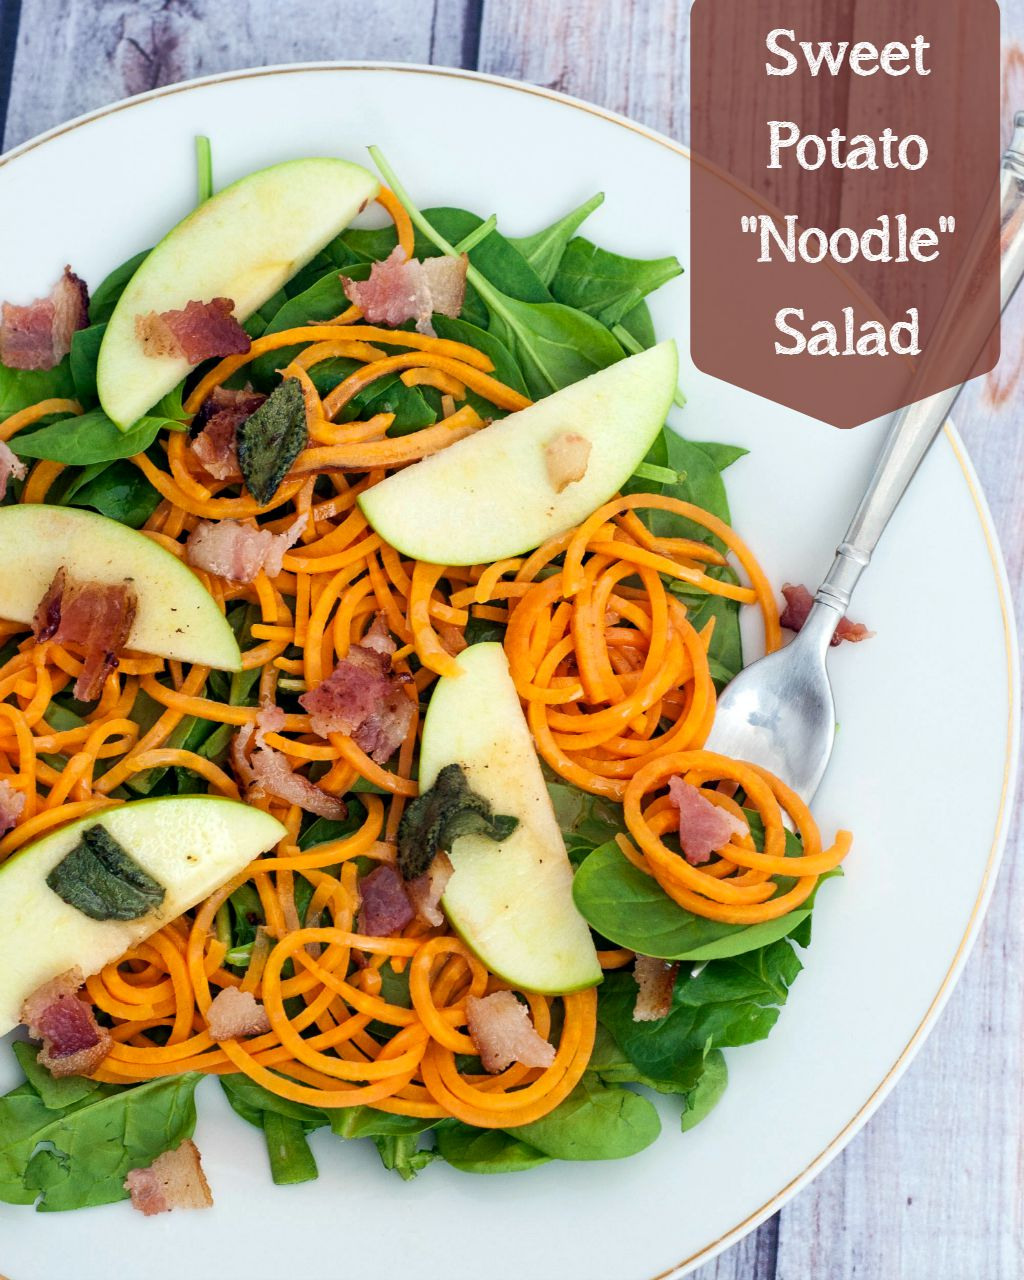 Sweet potato noodle salad swaps spiralized sweet potatos for pasta, served over spinach and apples with a delicious and tangy warm sage-brown-butter dressing. TheRedheadBaker.com